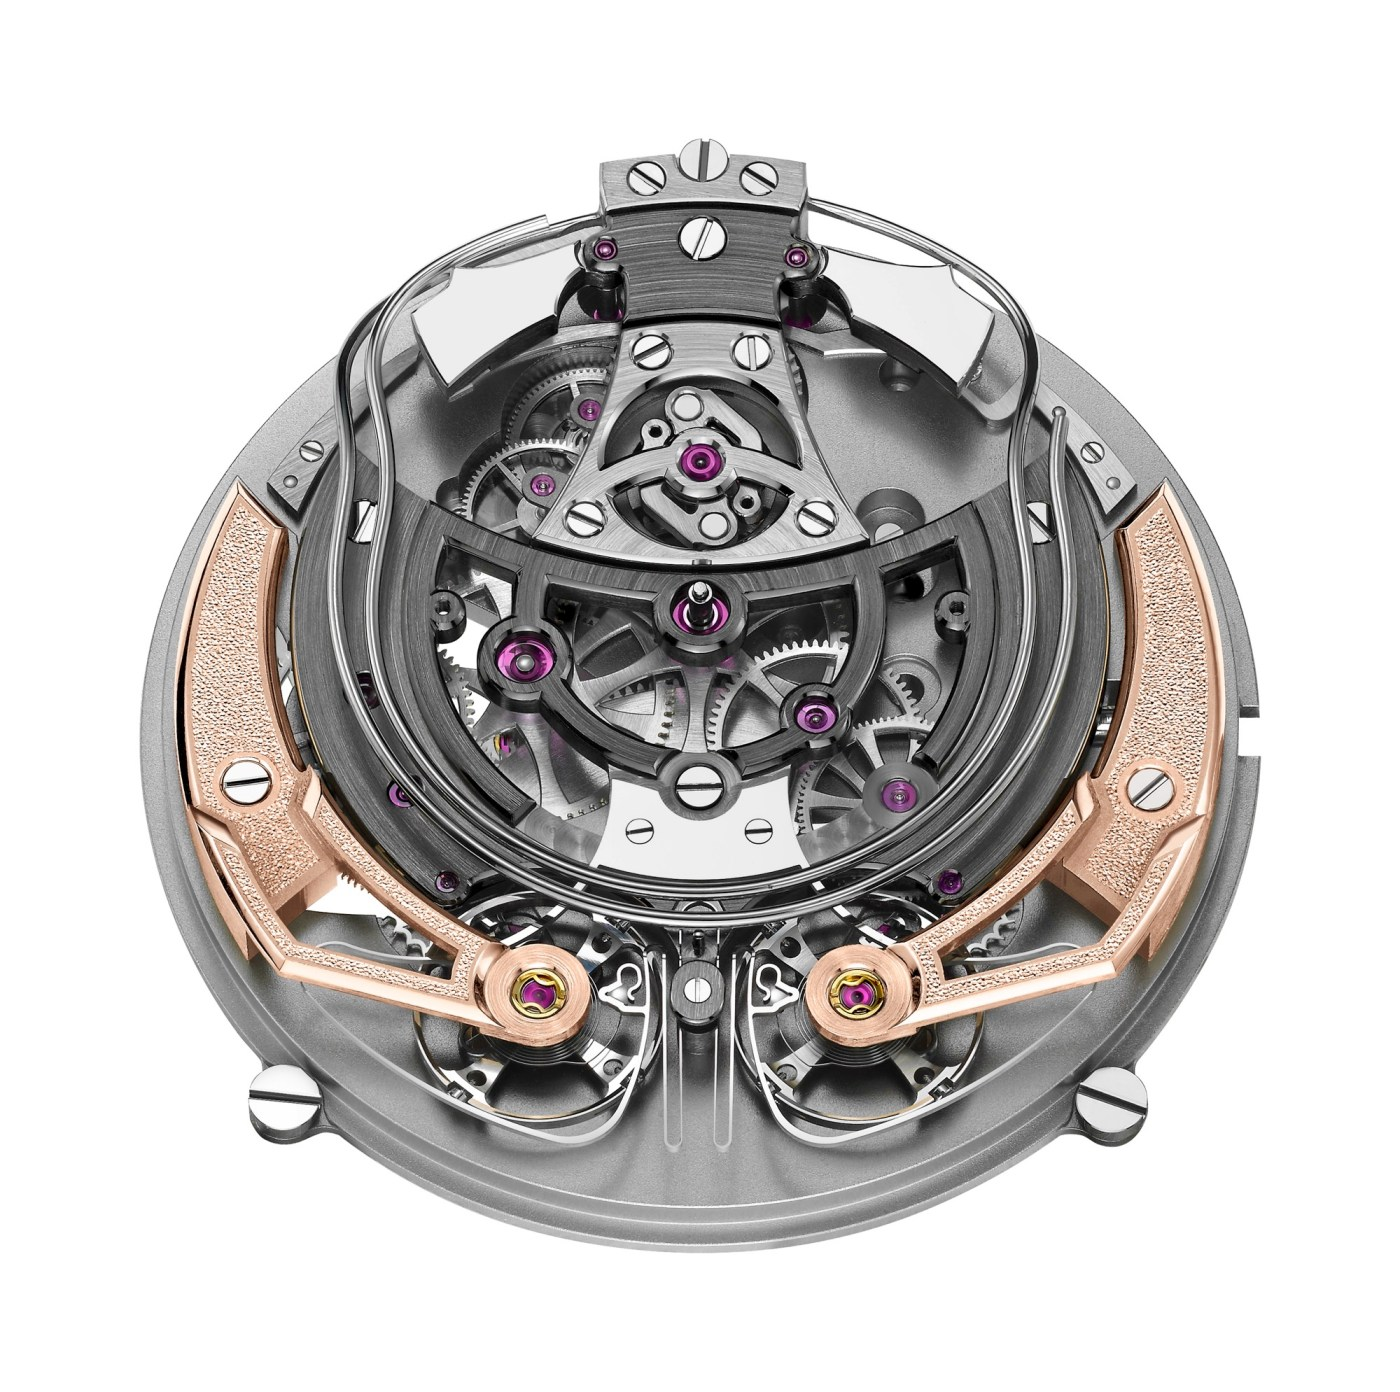 Armin Strom Minute Repeater Resonance caliber ARR18 movement side